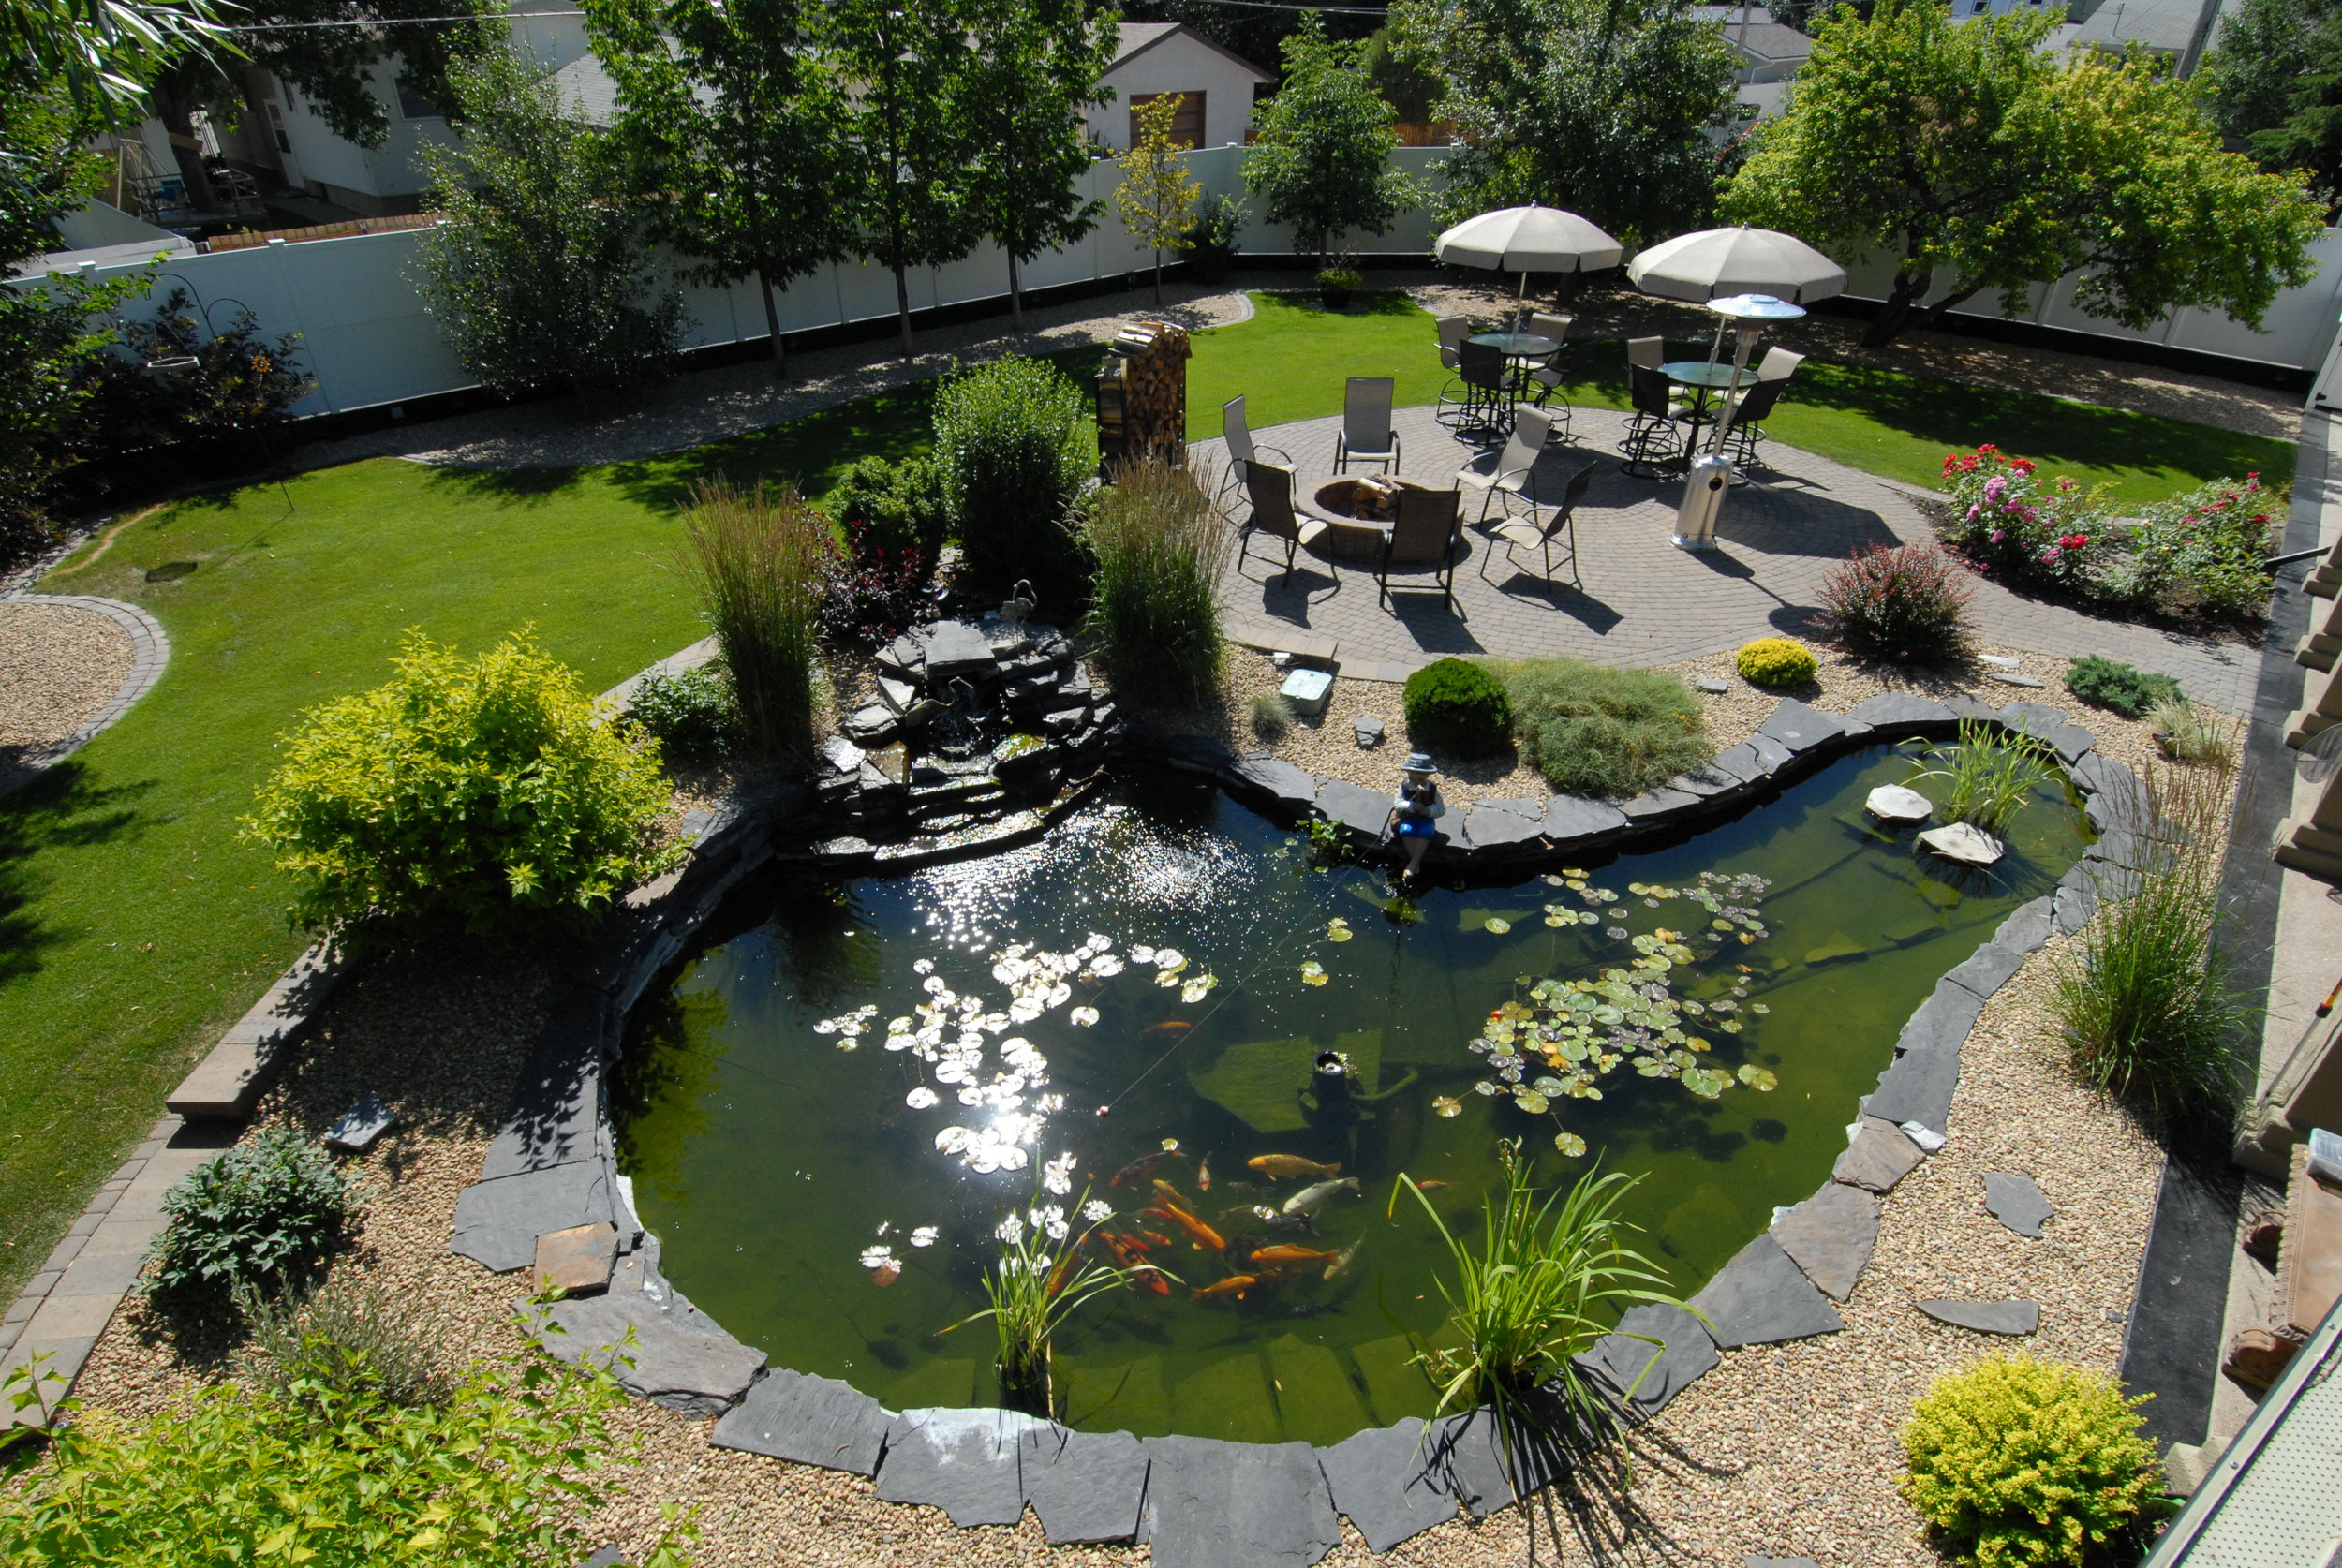 This is the completed project of the above landscape design.